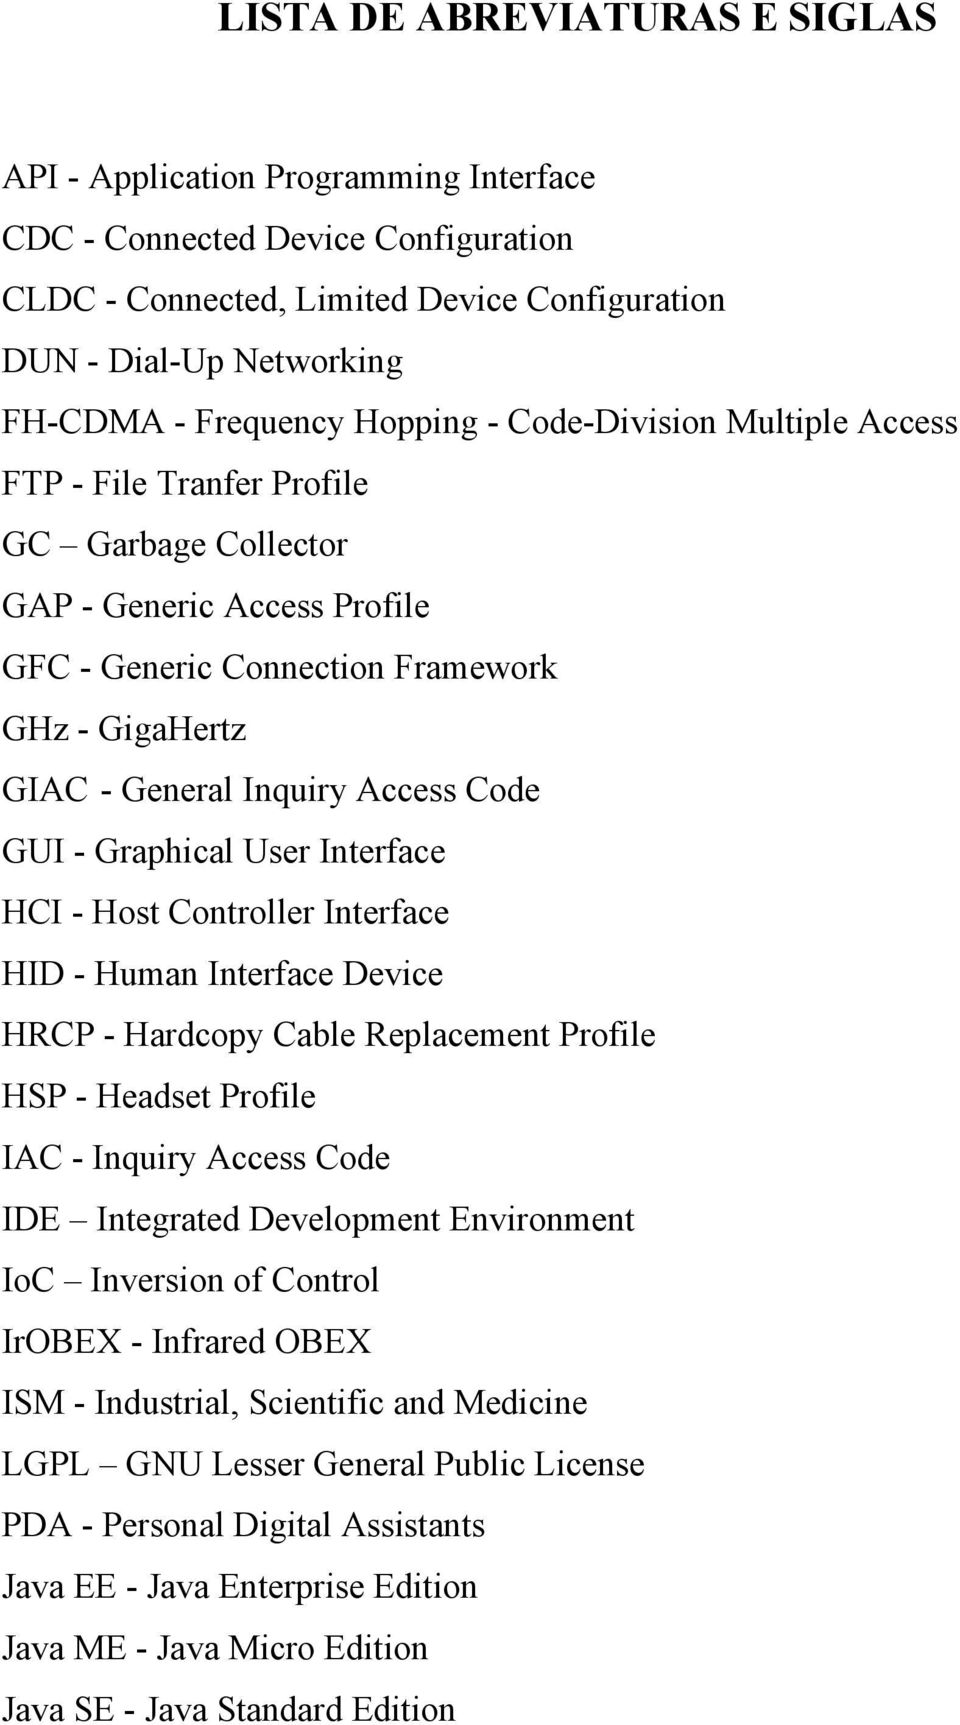 Code GUI - Graphical User Interface HCI - Host Controller Interface HID - Human Interface Device HRCP - Hardcopy Cable Replacement Profile HSP - Headset Profile IAC - Inquiry Access Code IDE